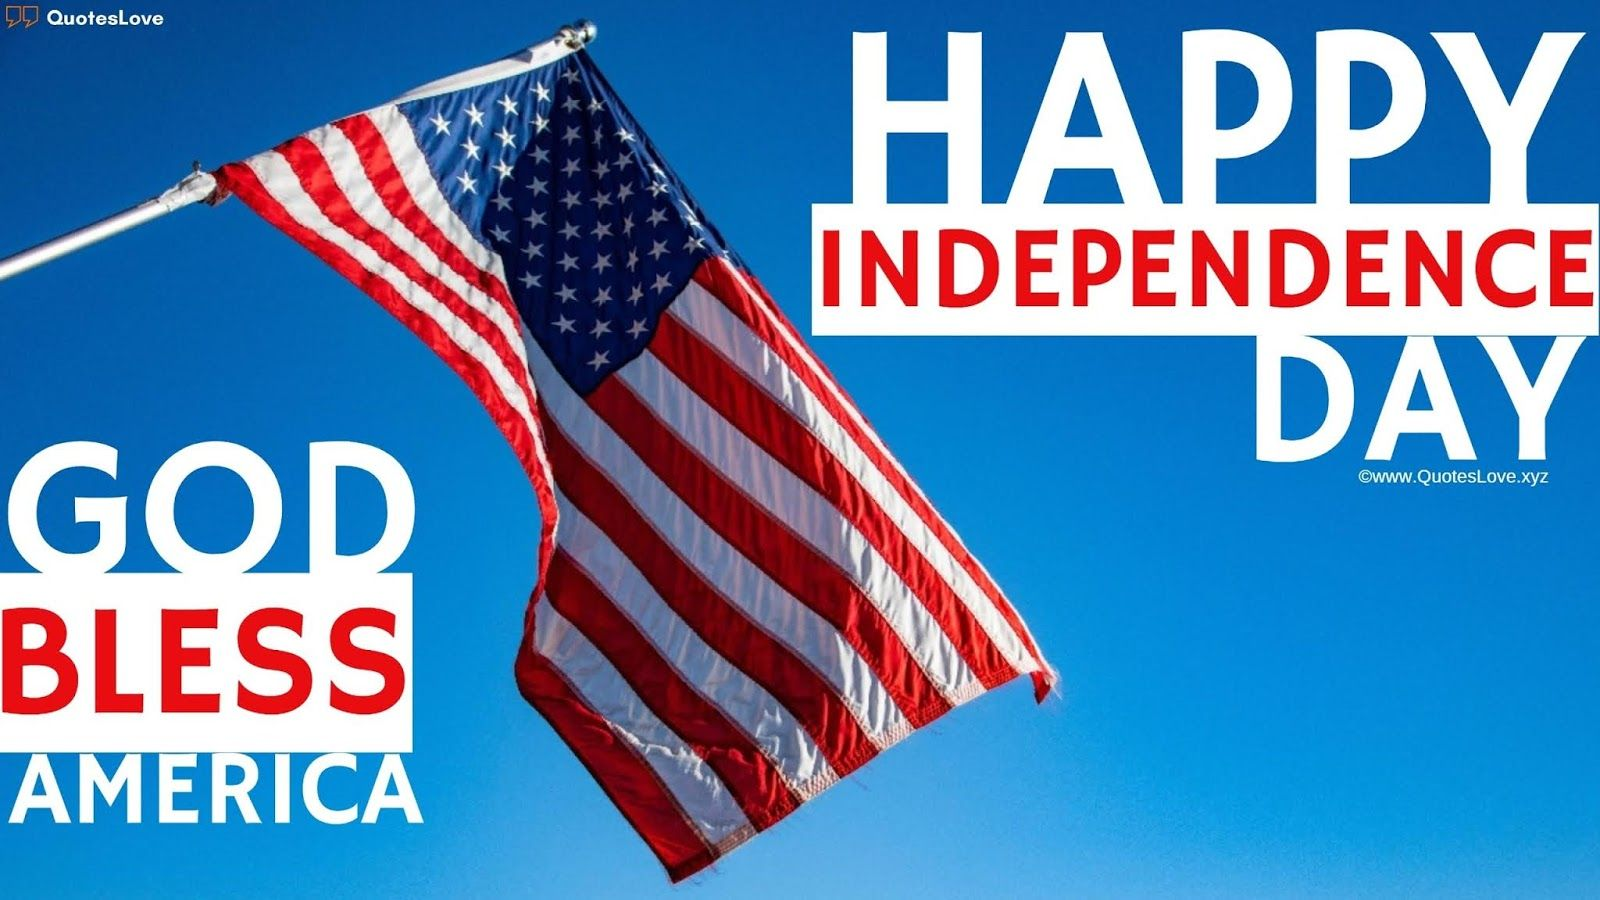 United-States-Independence-Day-Quotes-Wishes-Messages-Greetings-Sayings-Images-Pictures-Poster...jpg